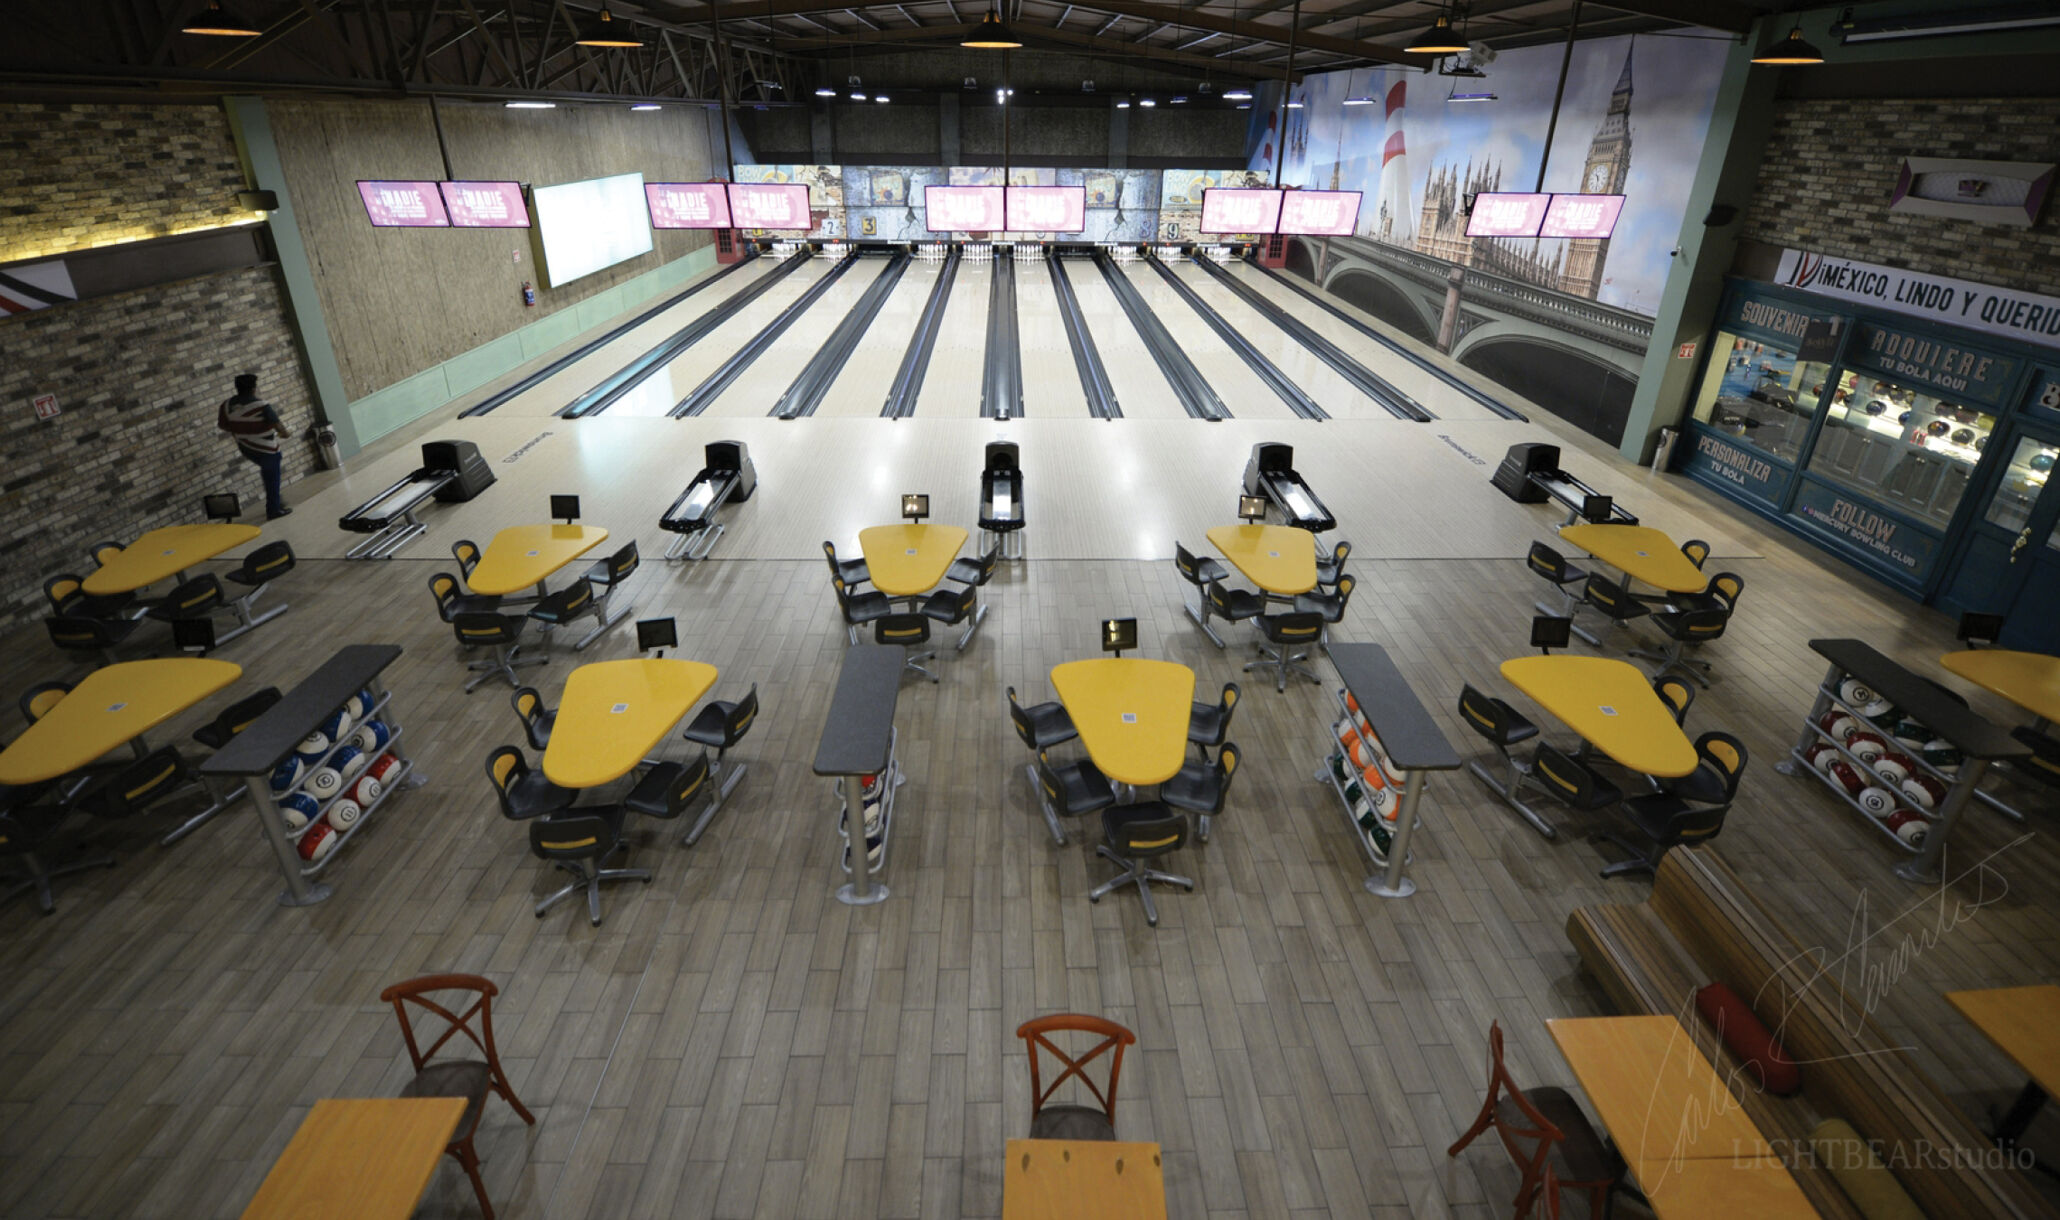 Mercury Bowling Center, Oxaca Mexico - Lanes and seating-1